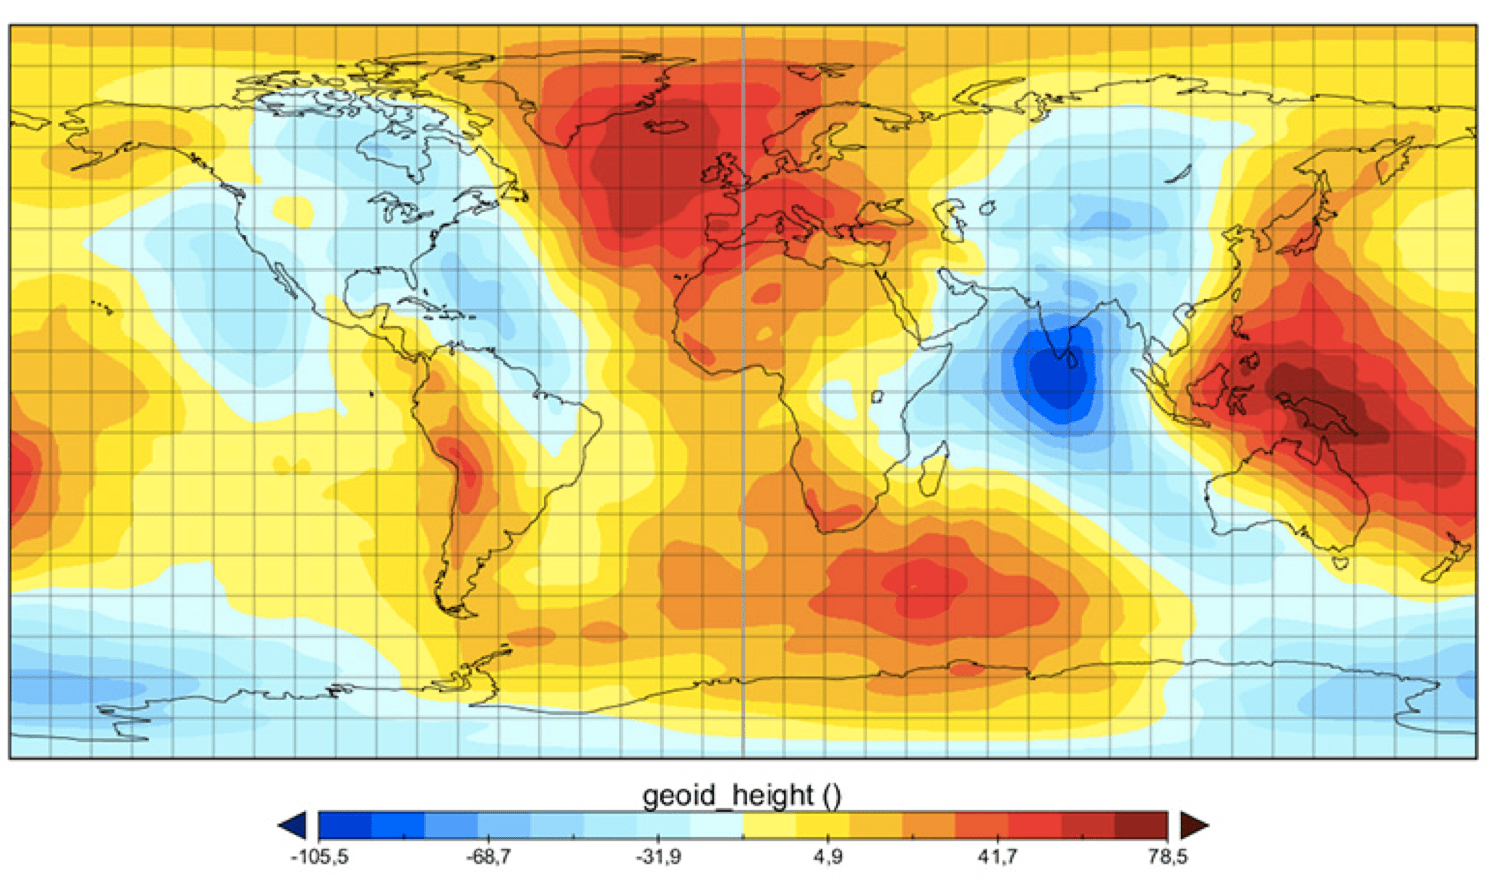 The Missing Mass What Is Causing A Geoid Low In The